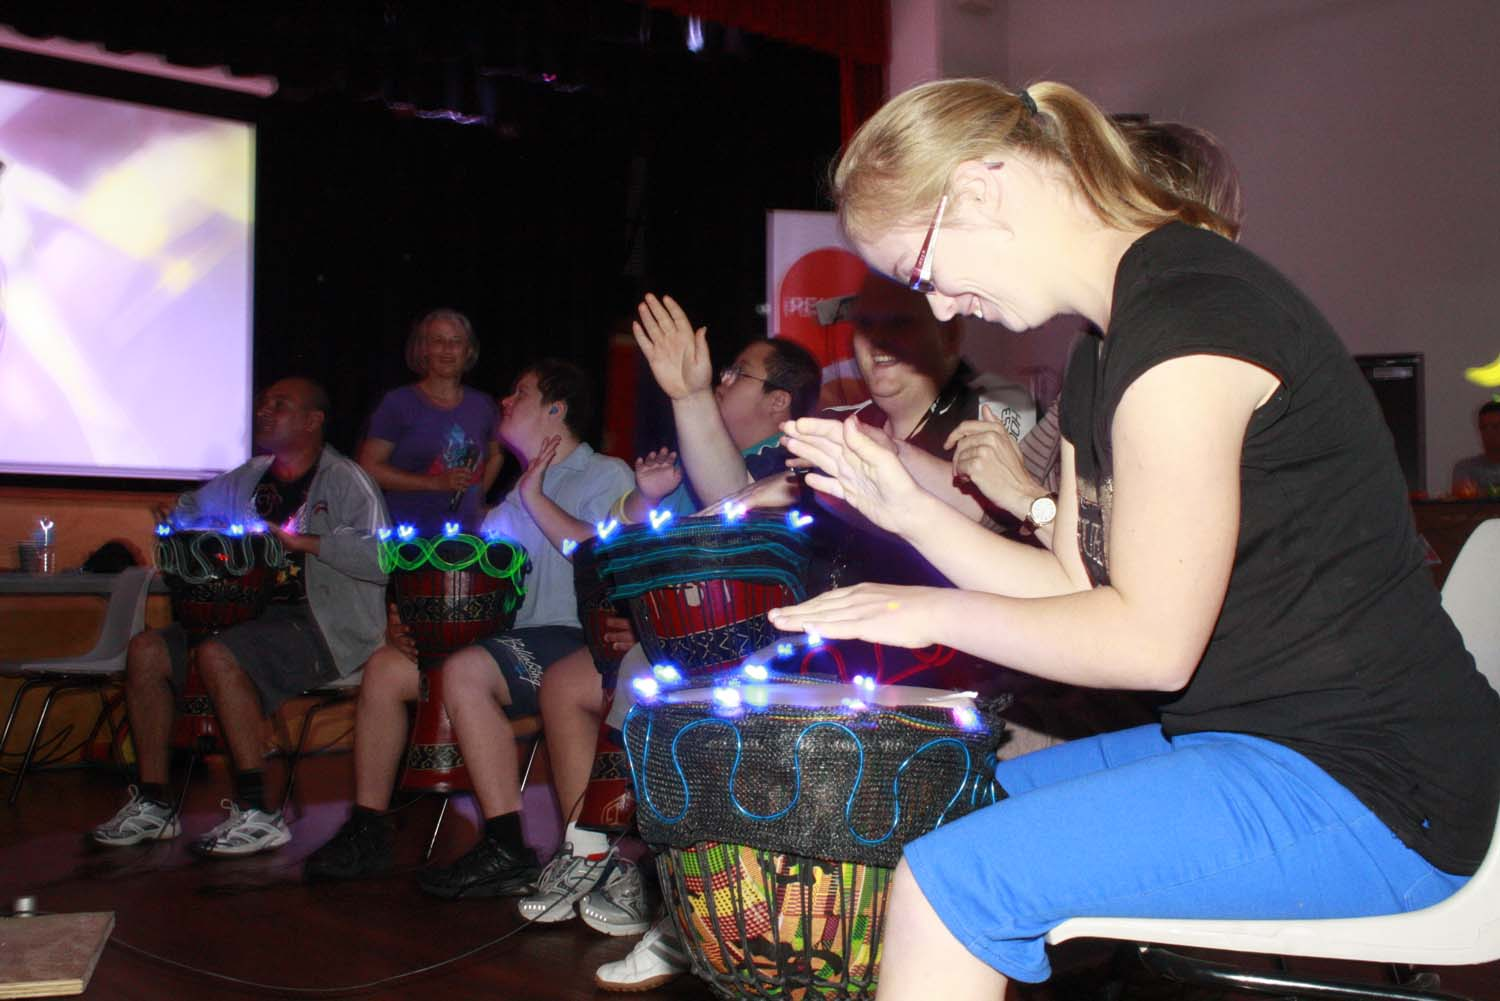 Drumming using the interactive drums from Light Rhythm Plays!